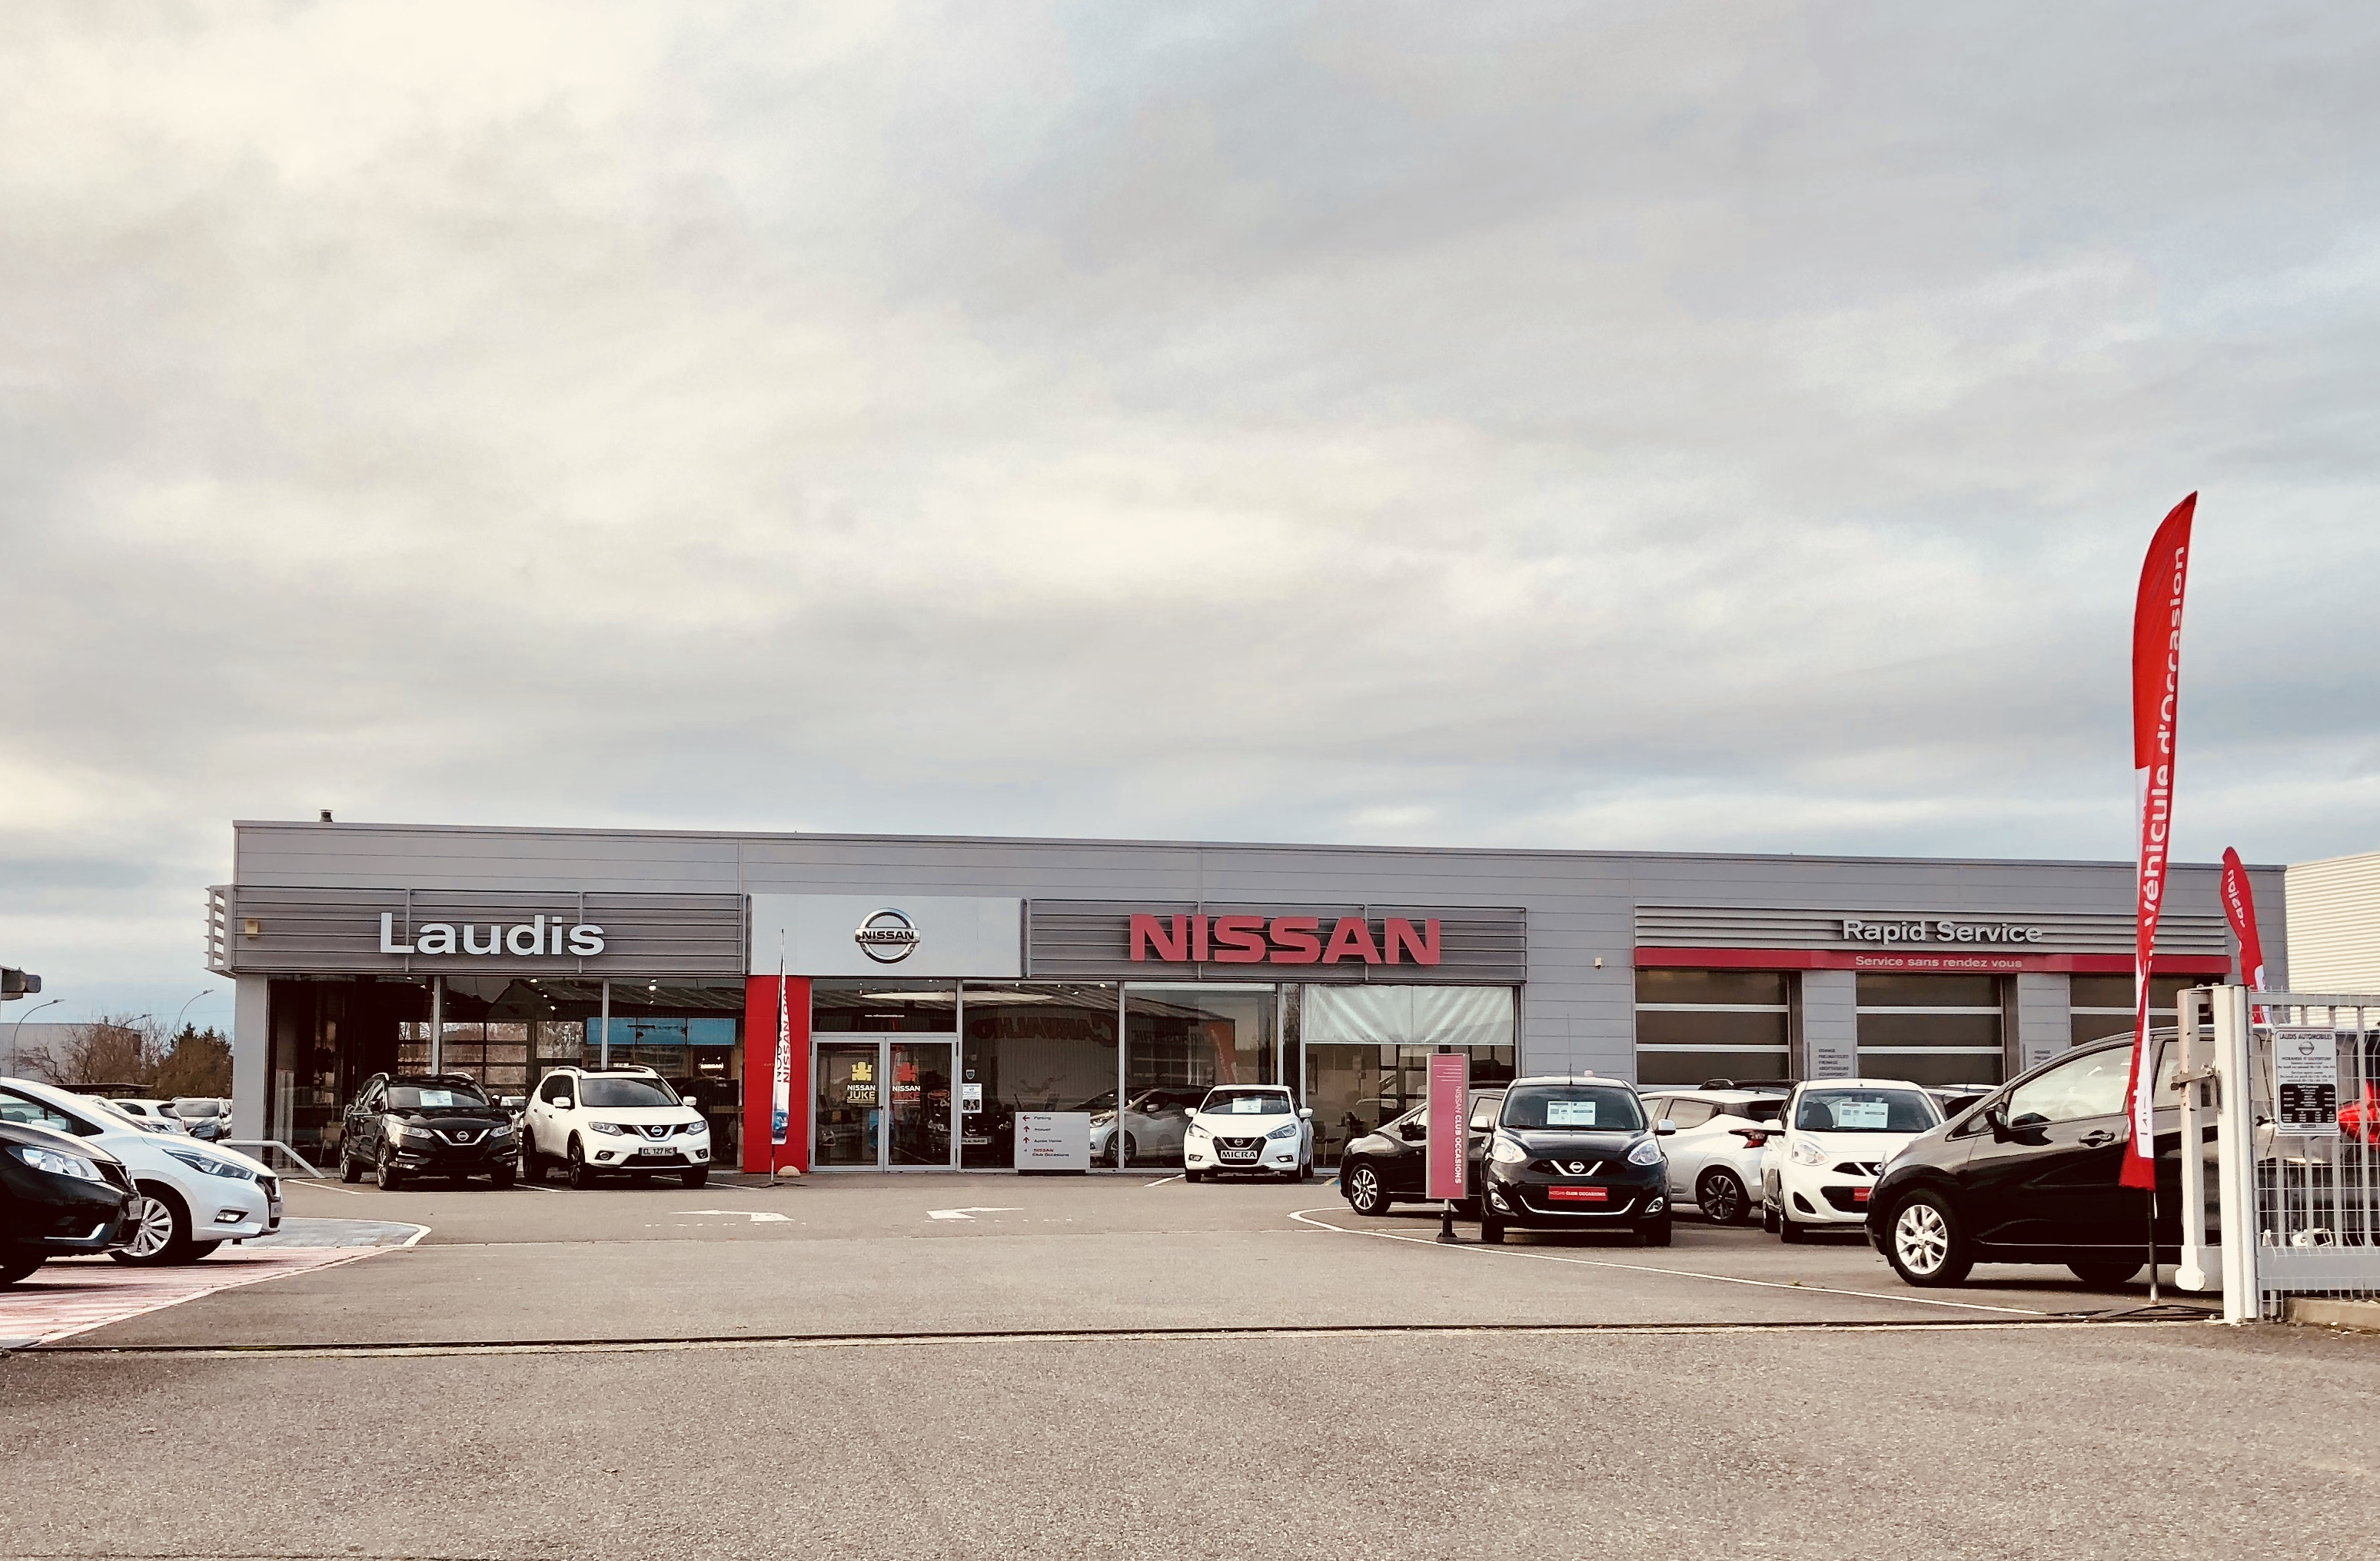 laudis automobiles nissan montauban concessionnaire nissan montauban auto occasion montauban. Black Bedroom Furniture Sets. Home Design Ideas